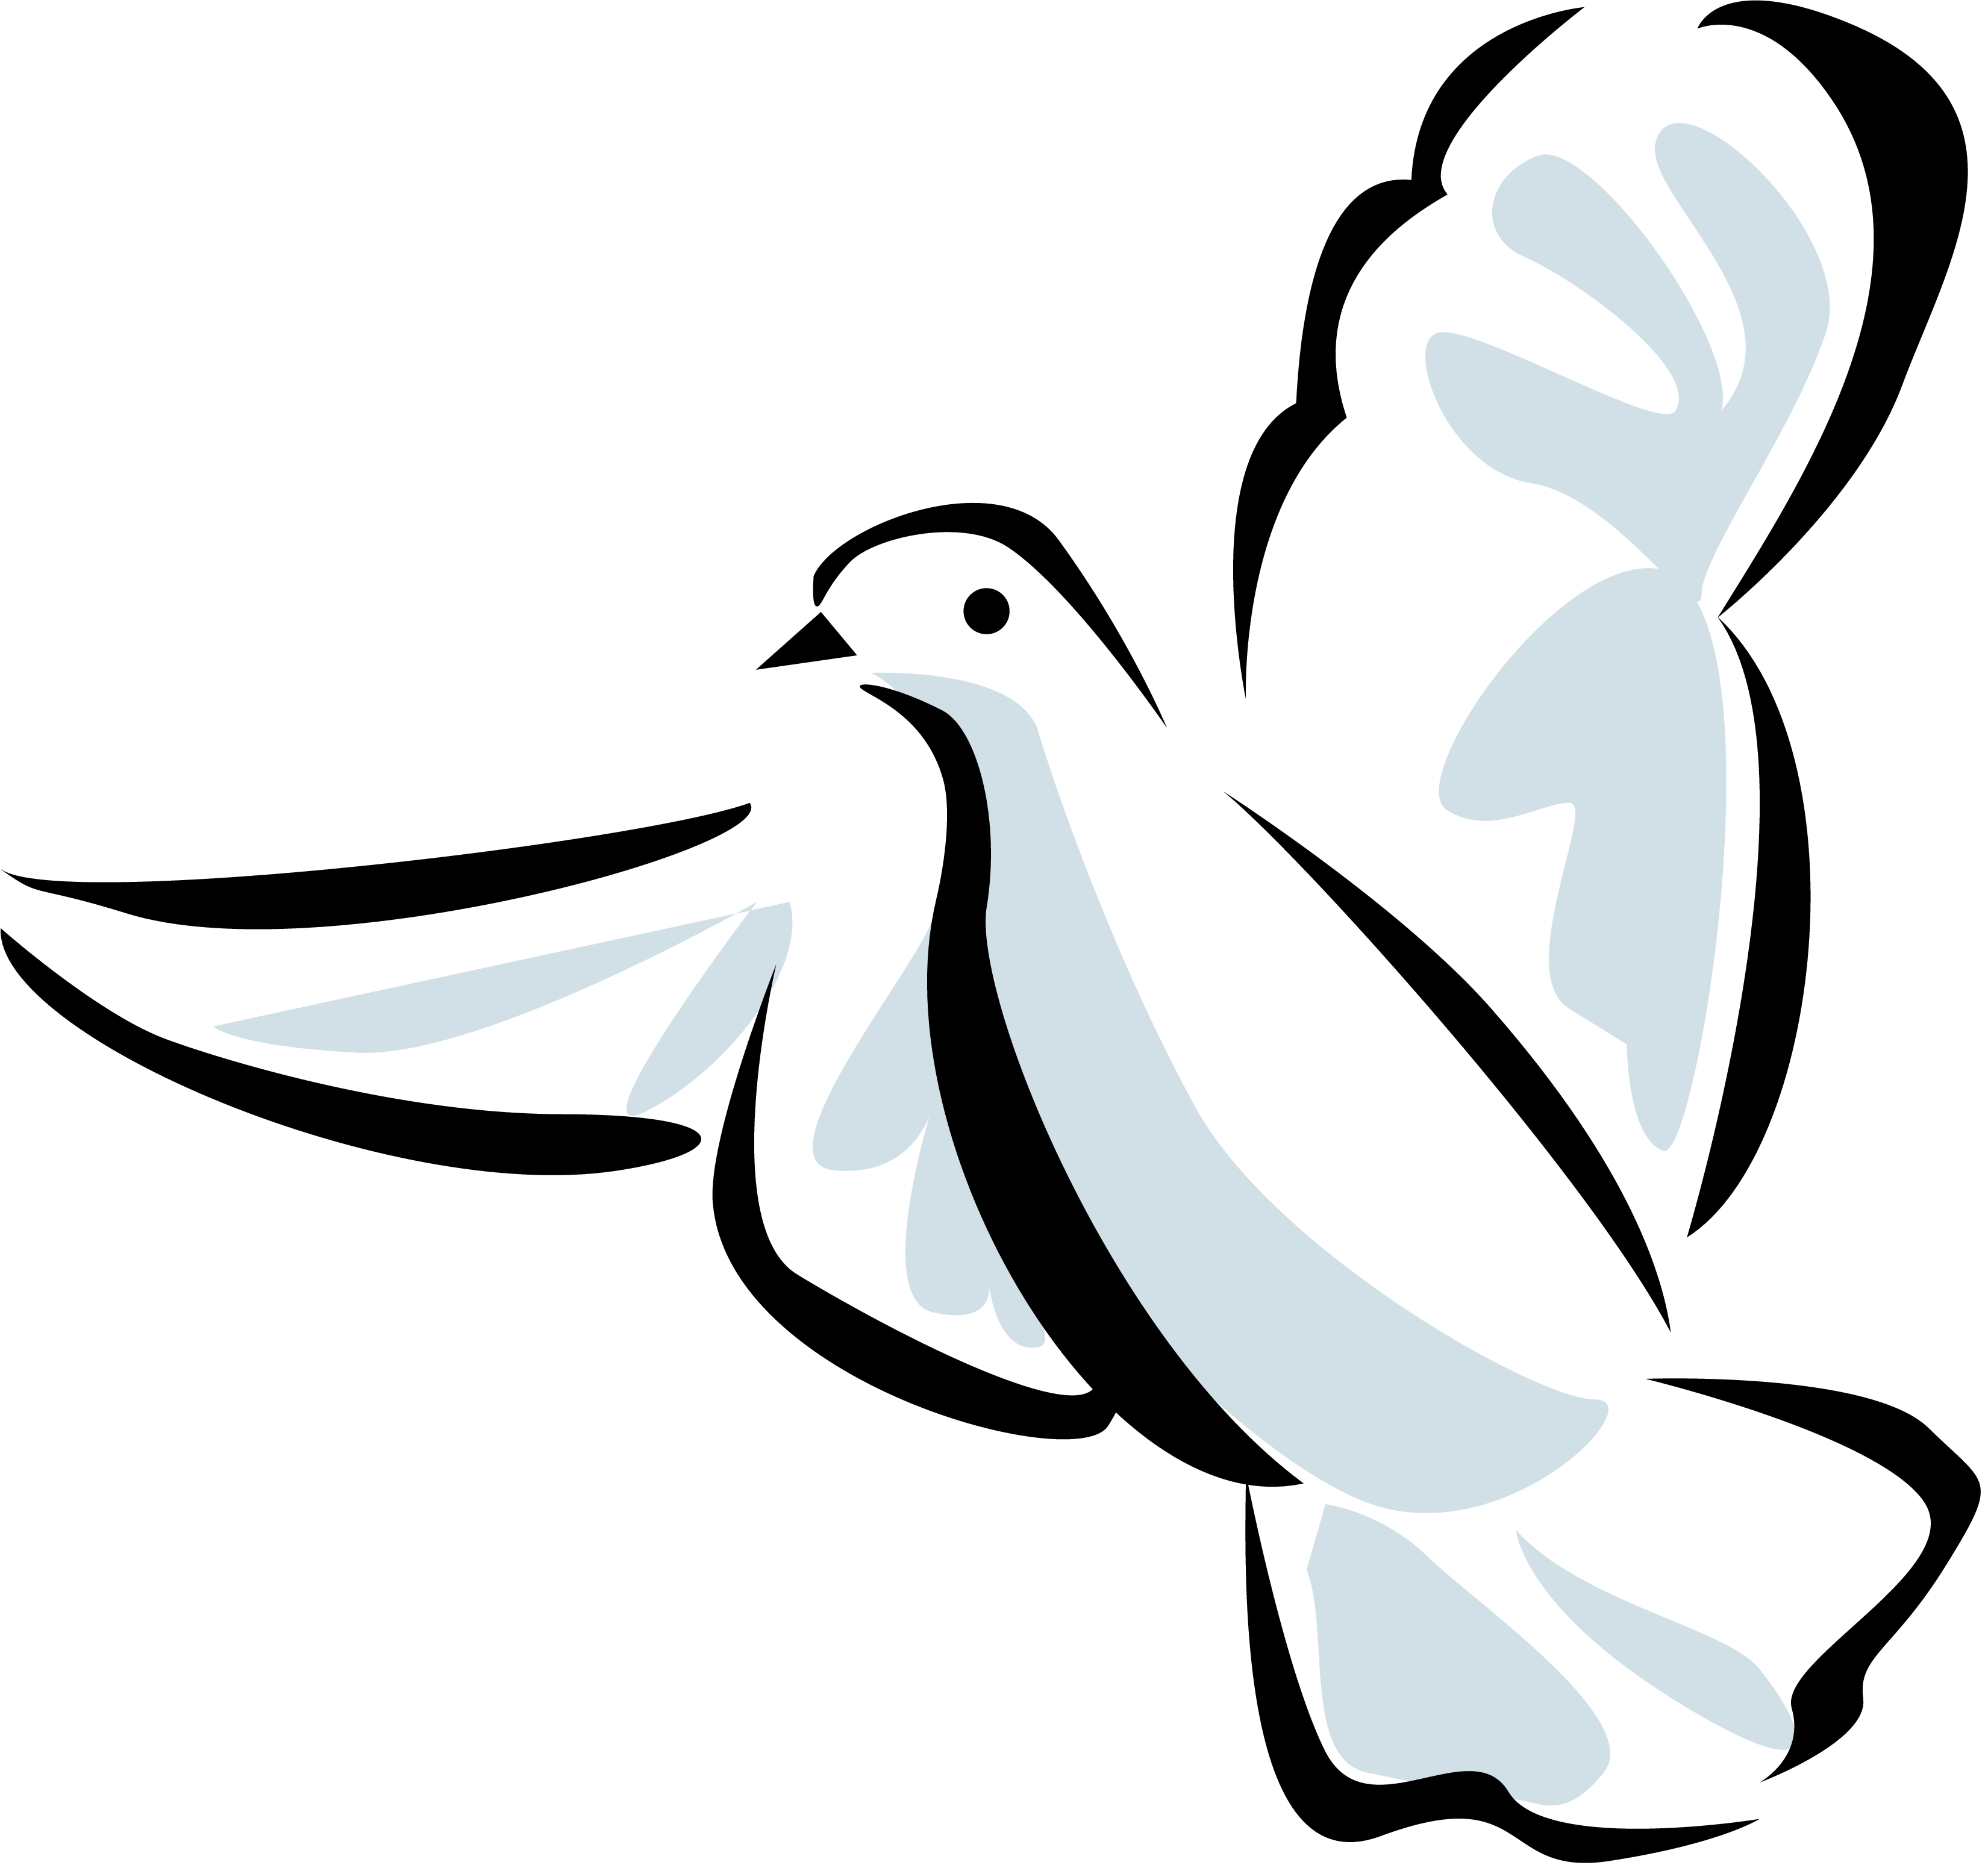 Holy spirit dove clipart free images 2